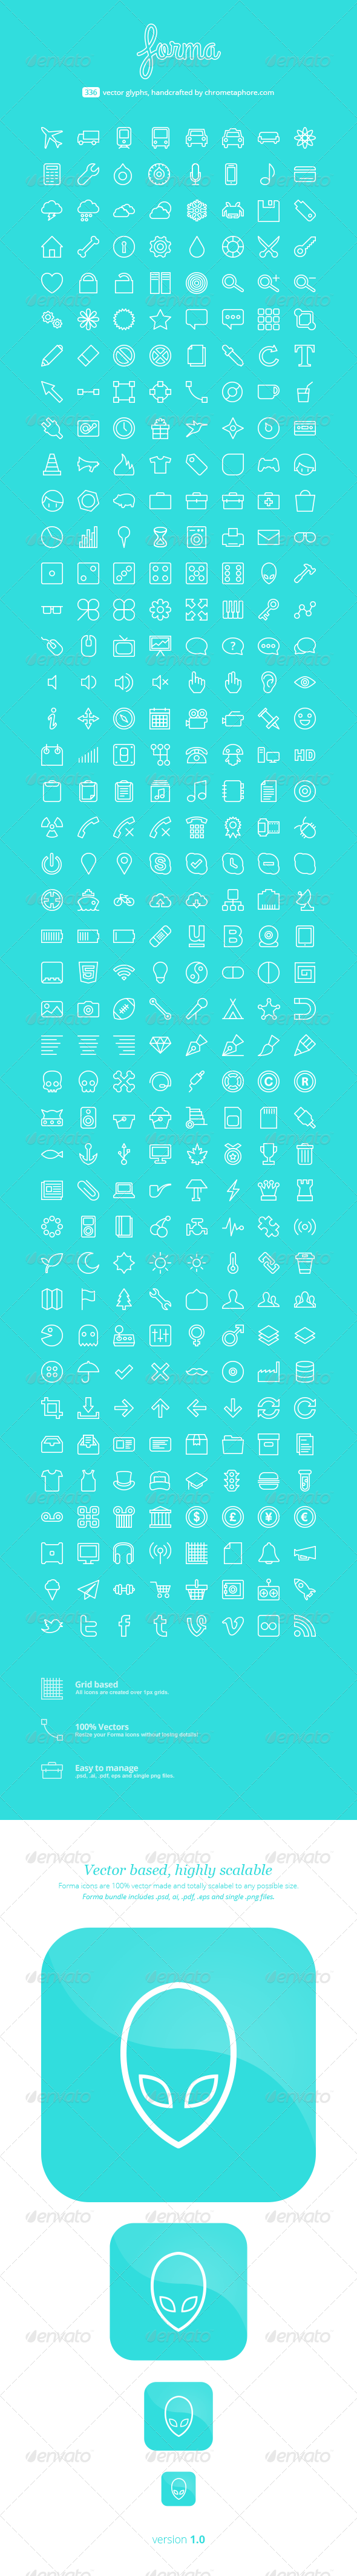 GraphicRiver Forma line 336 vector icons 7390525